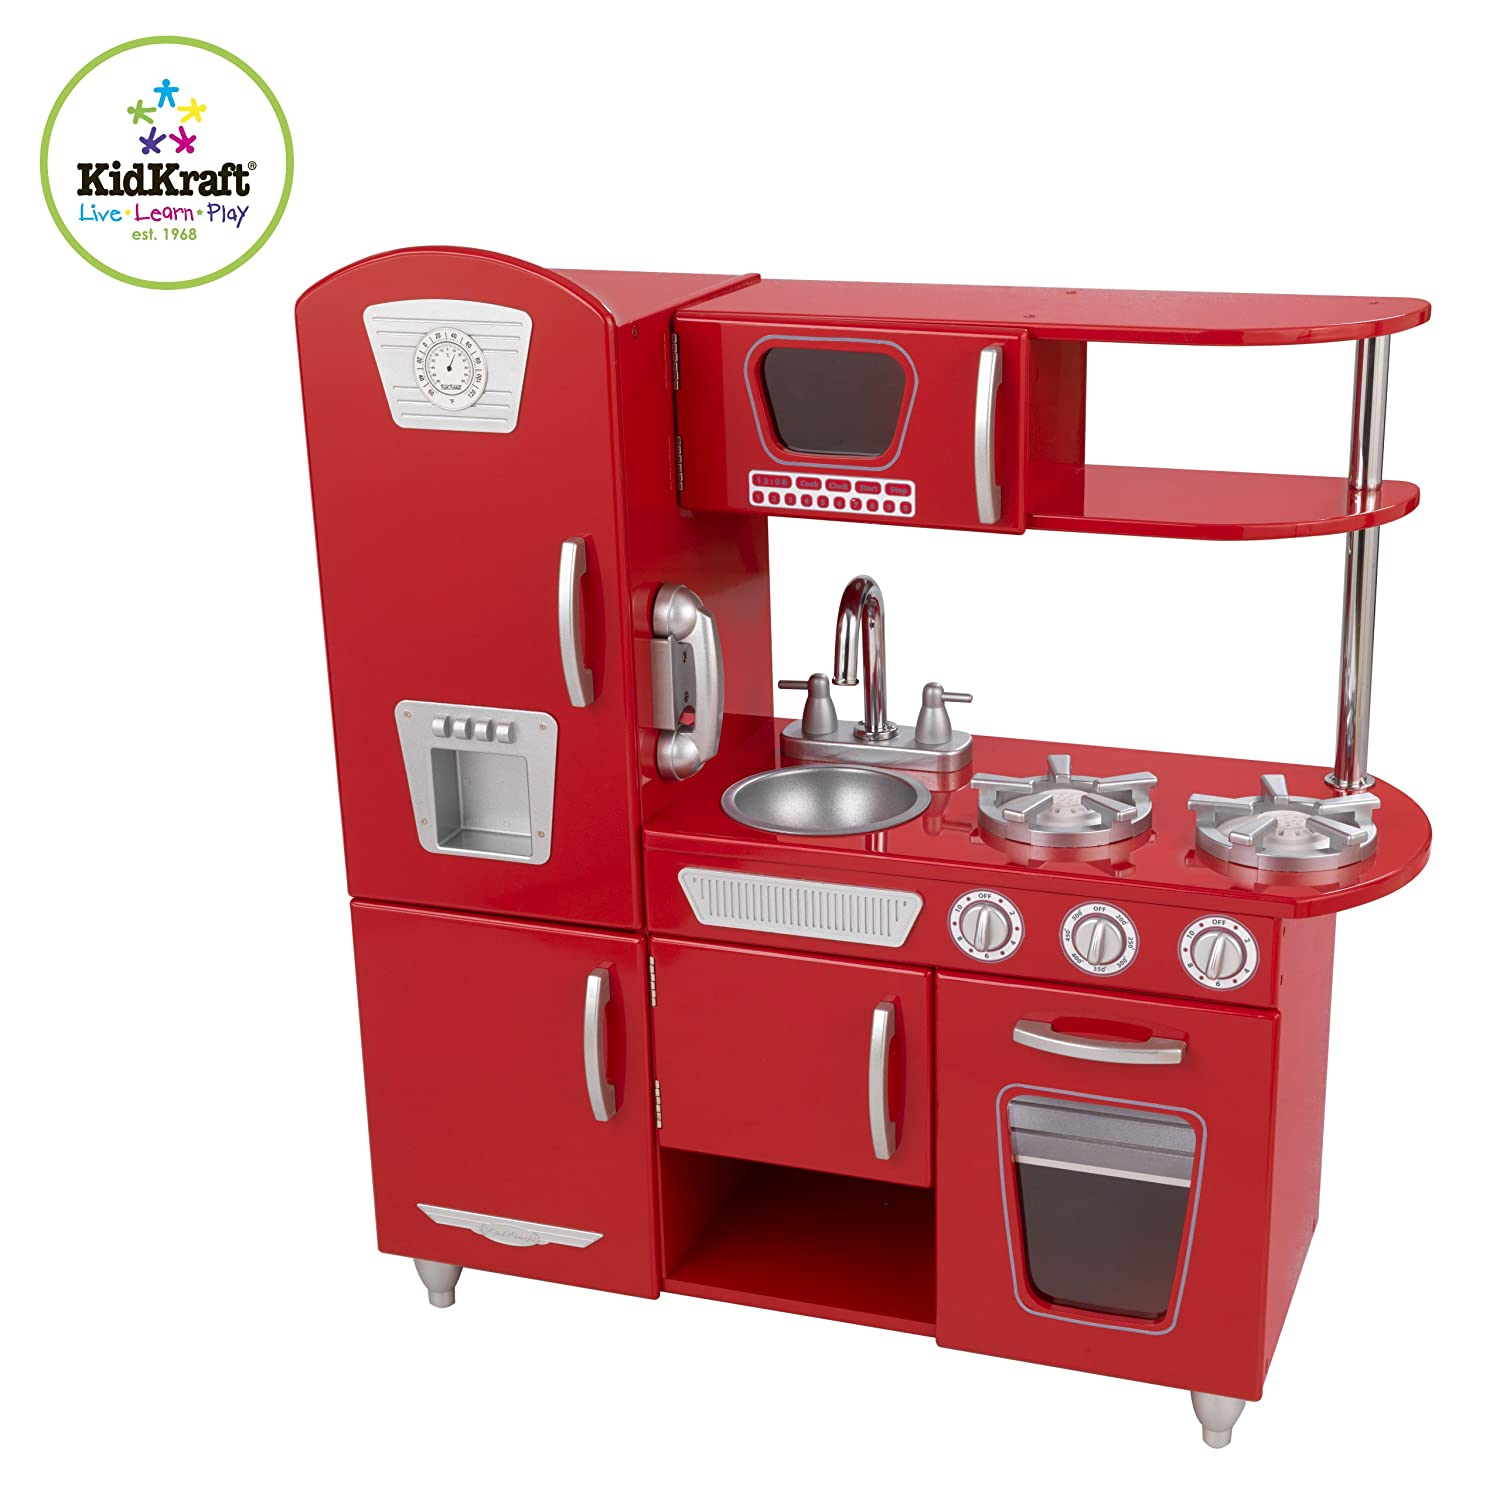 contemporary red play kitchen set toy wooden pretend appliance by  -  red play kitchen set